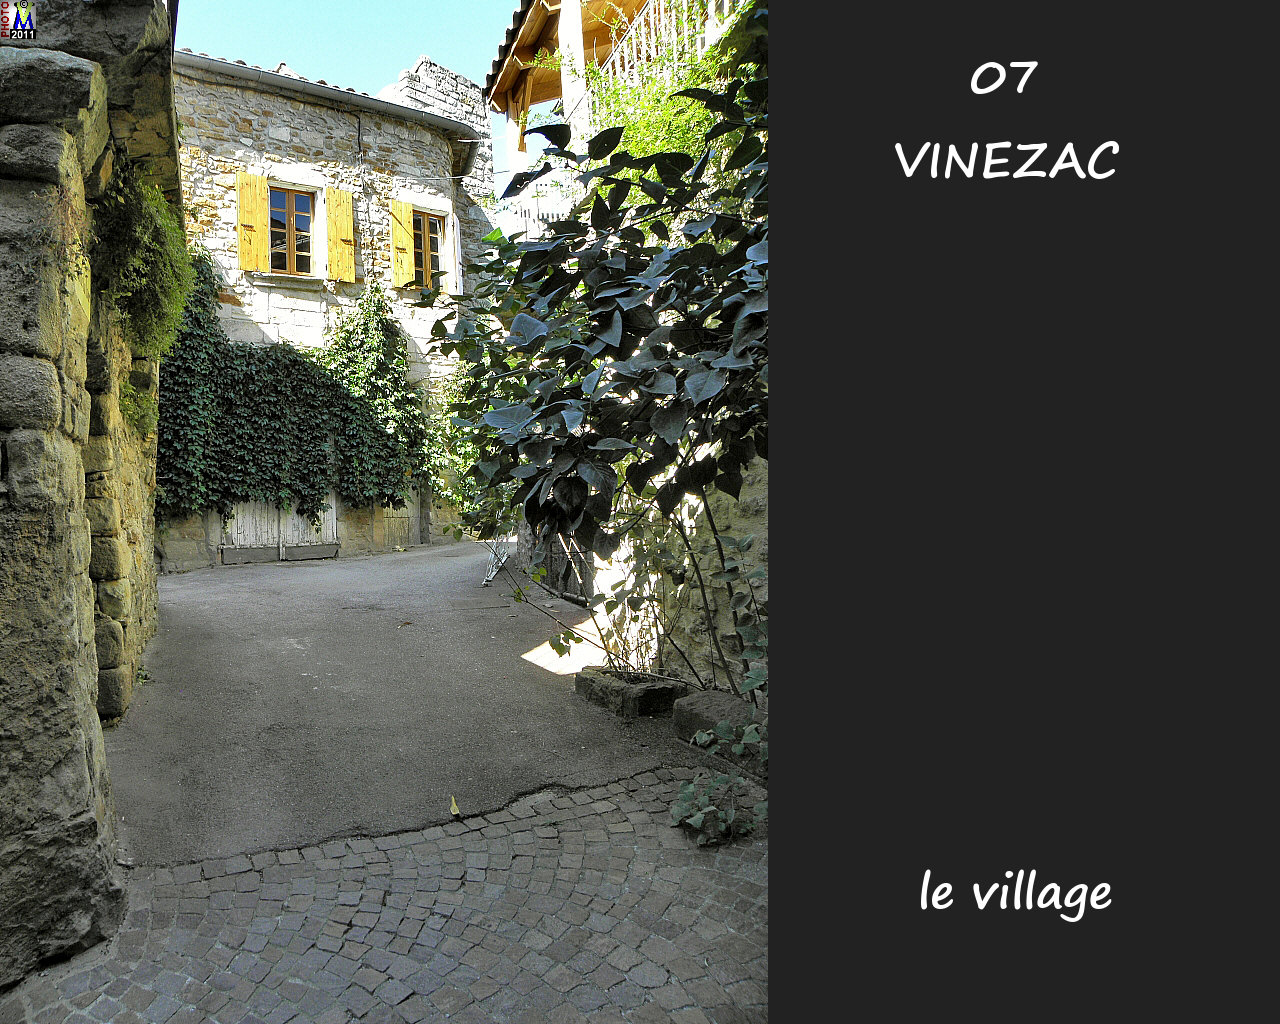 07VINEZAC_village_162.jpg